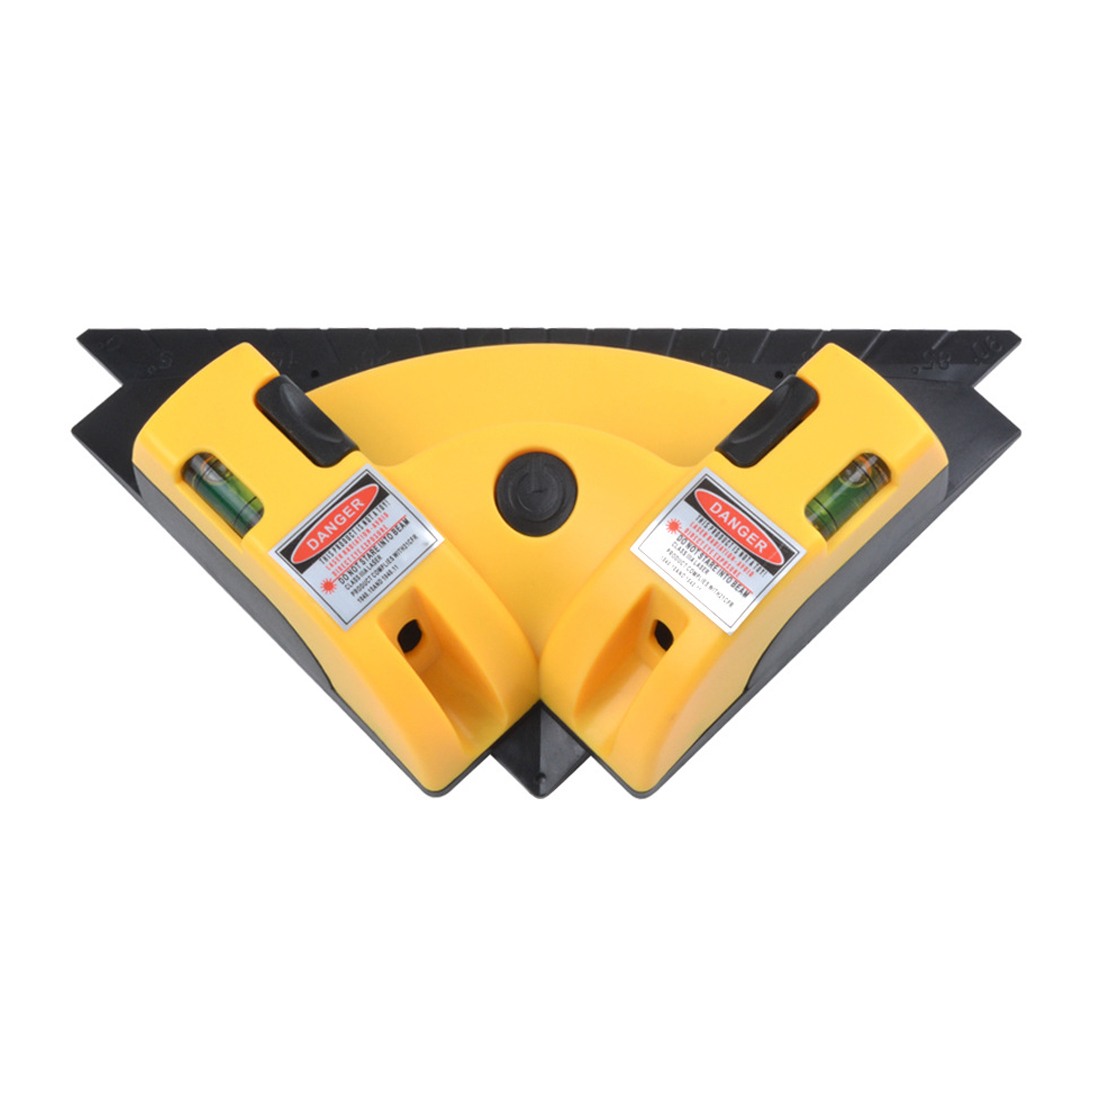 Laser Level Right Angle 90 Degree Vertical Horizontal Laser Line Projection Level Alignment Layout ToolLaser Level Right Angle 90 Degree Vertical Horizontal Laser Line Projection Level Alignment Layout Tool